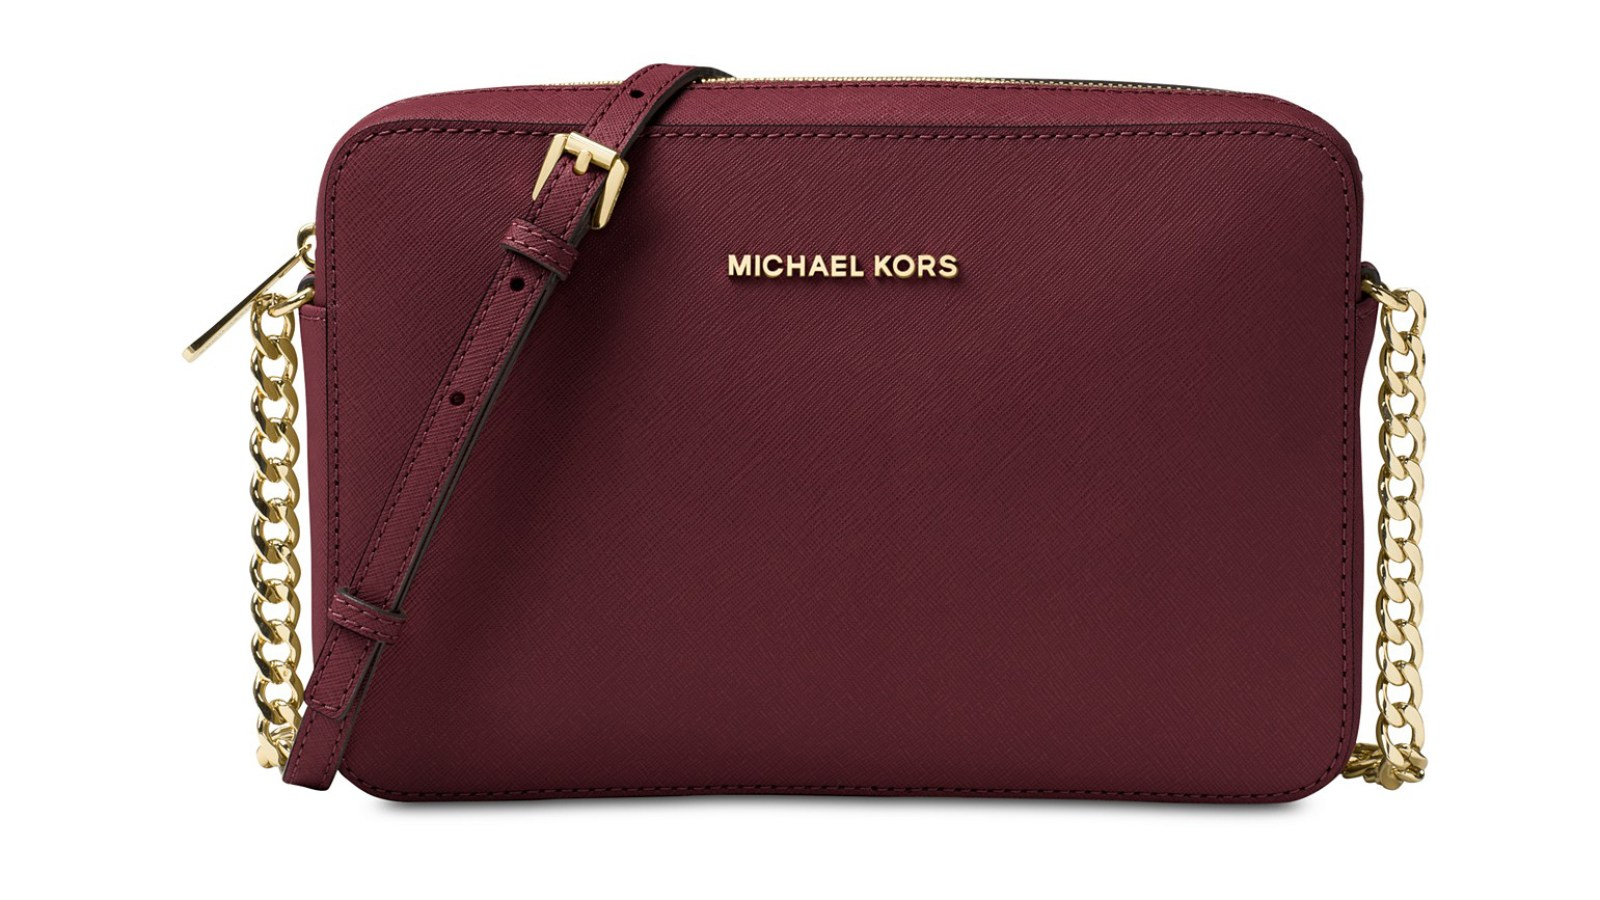 6f498845fd99 Over 1,000 Reviewers Love This $100 Michael Kors Cross-Body Purse